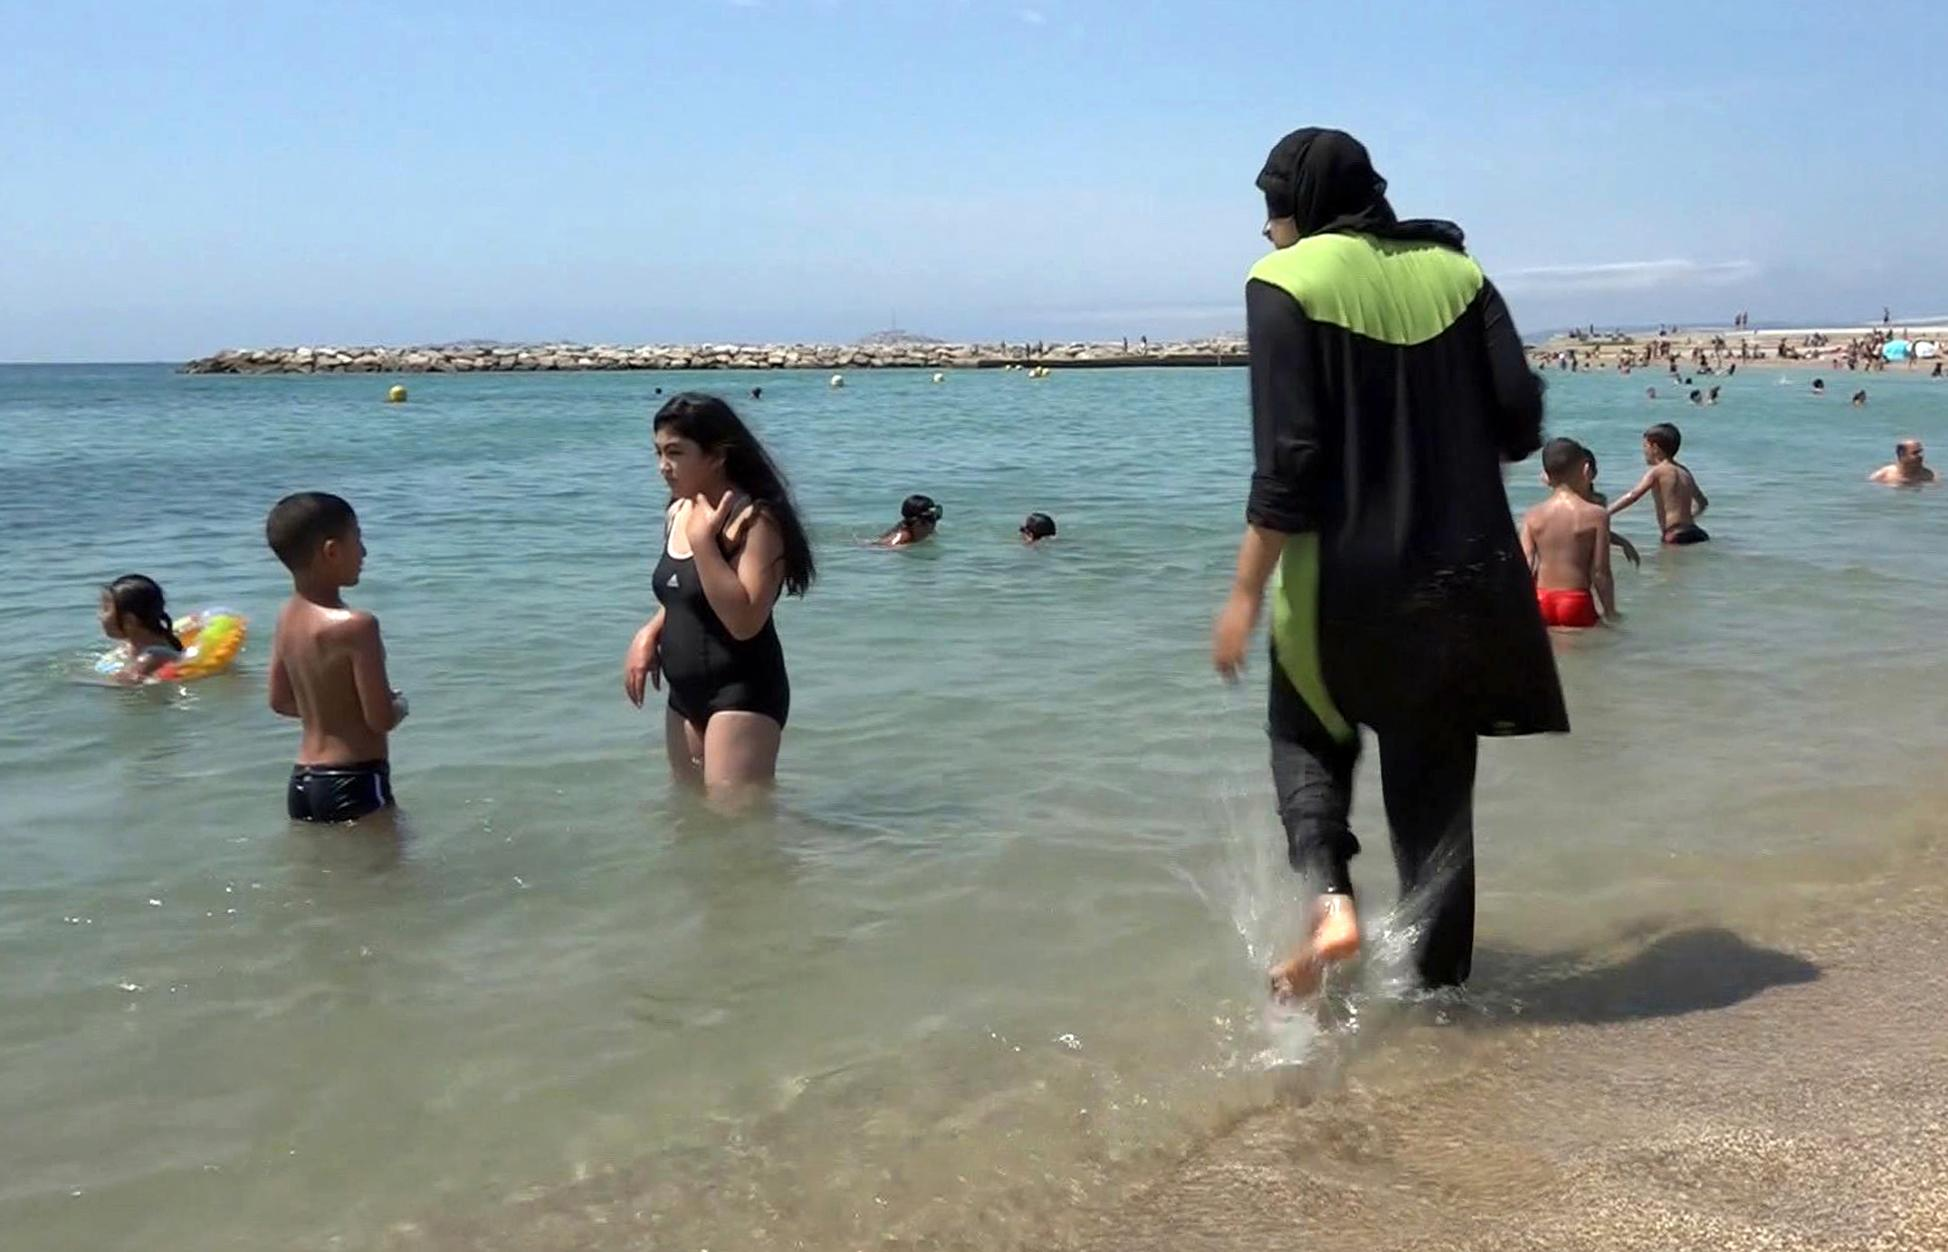 French lawyers seek overturn on burkini bans; verdict Friday